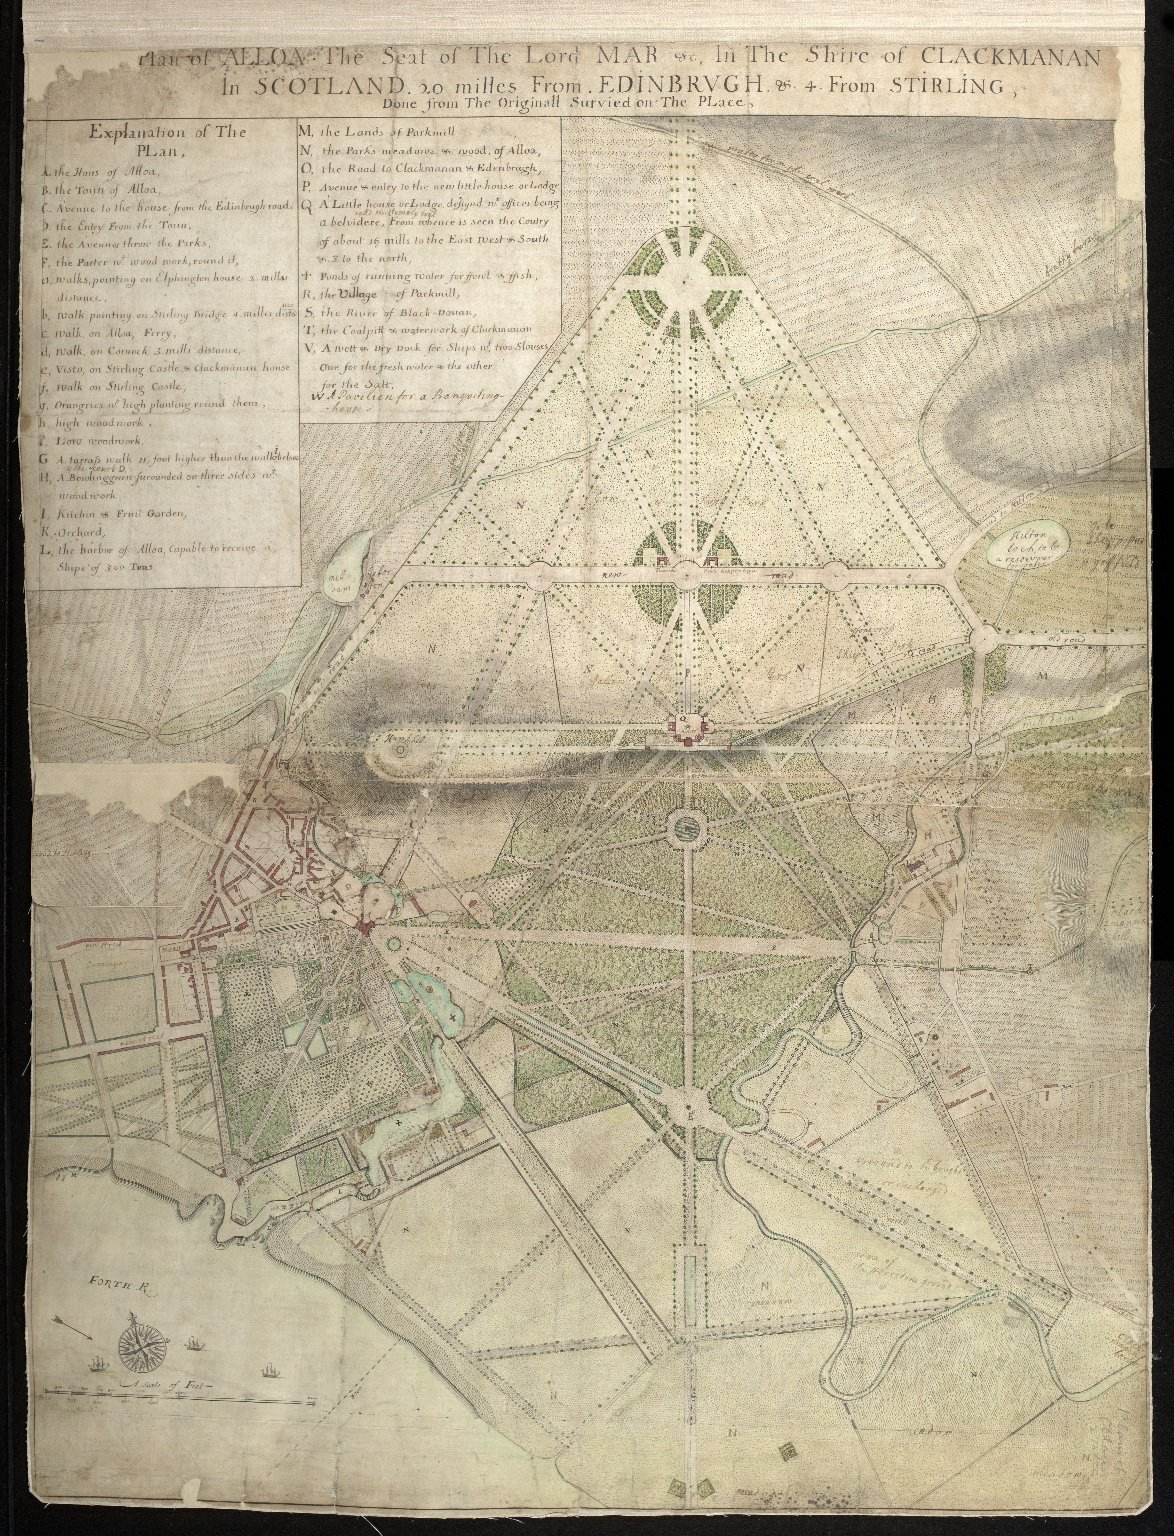 Plan of Alloa The Seat of The Lord Mar etc. In The Shire of Clackmanan In Scotland 20 milles from Edinbrugh & 4 From Stirling [1 of 2]